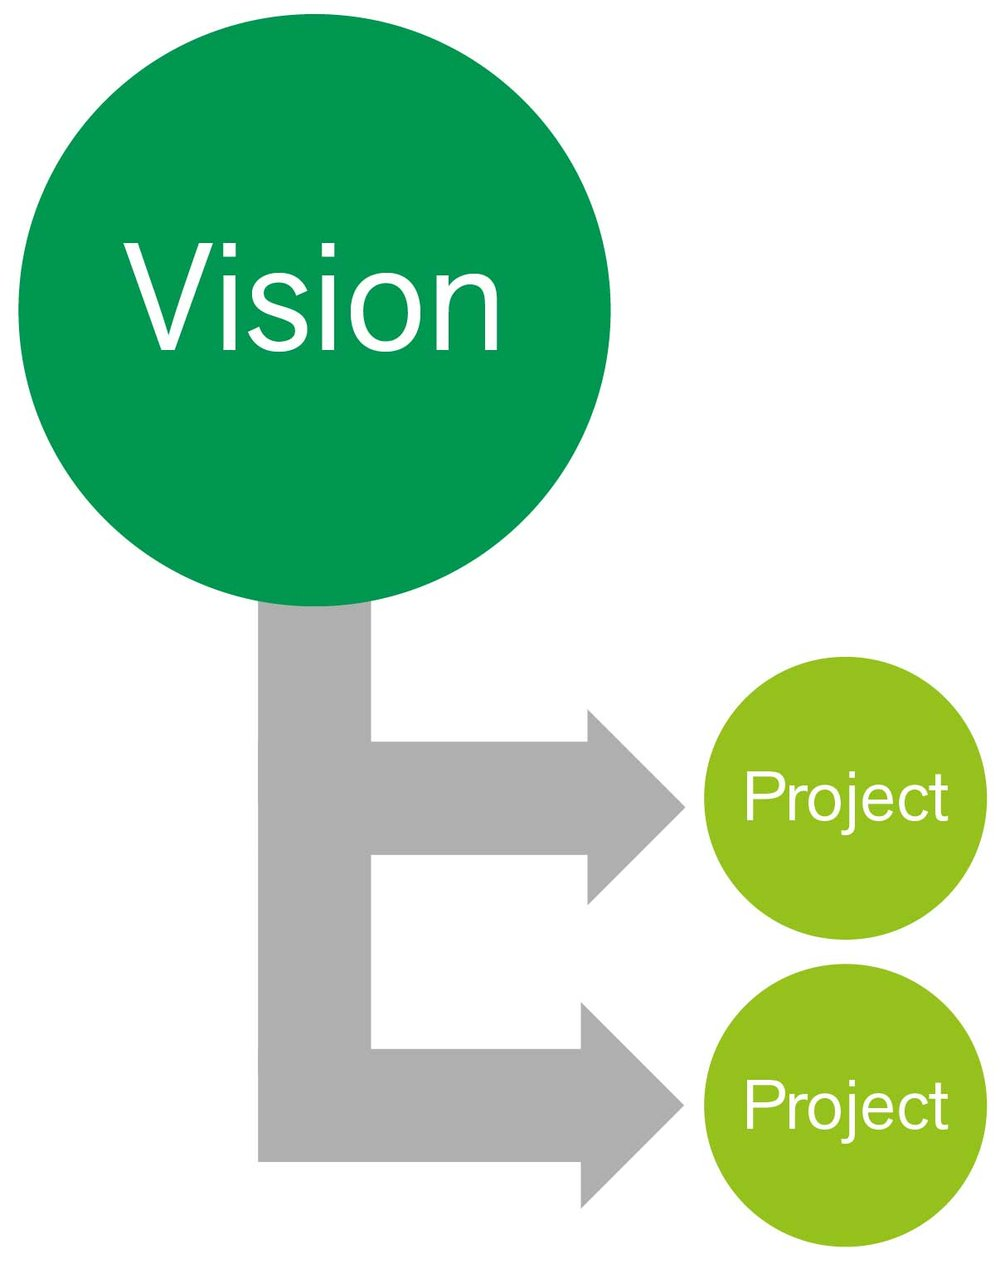 vision-project-baywa-re-solar-review.jpg